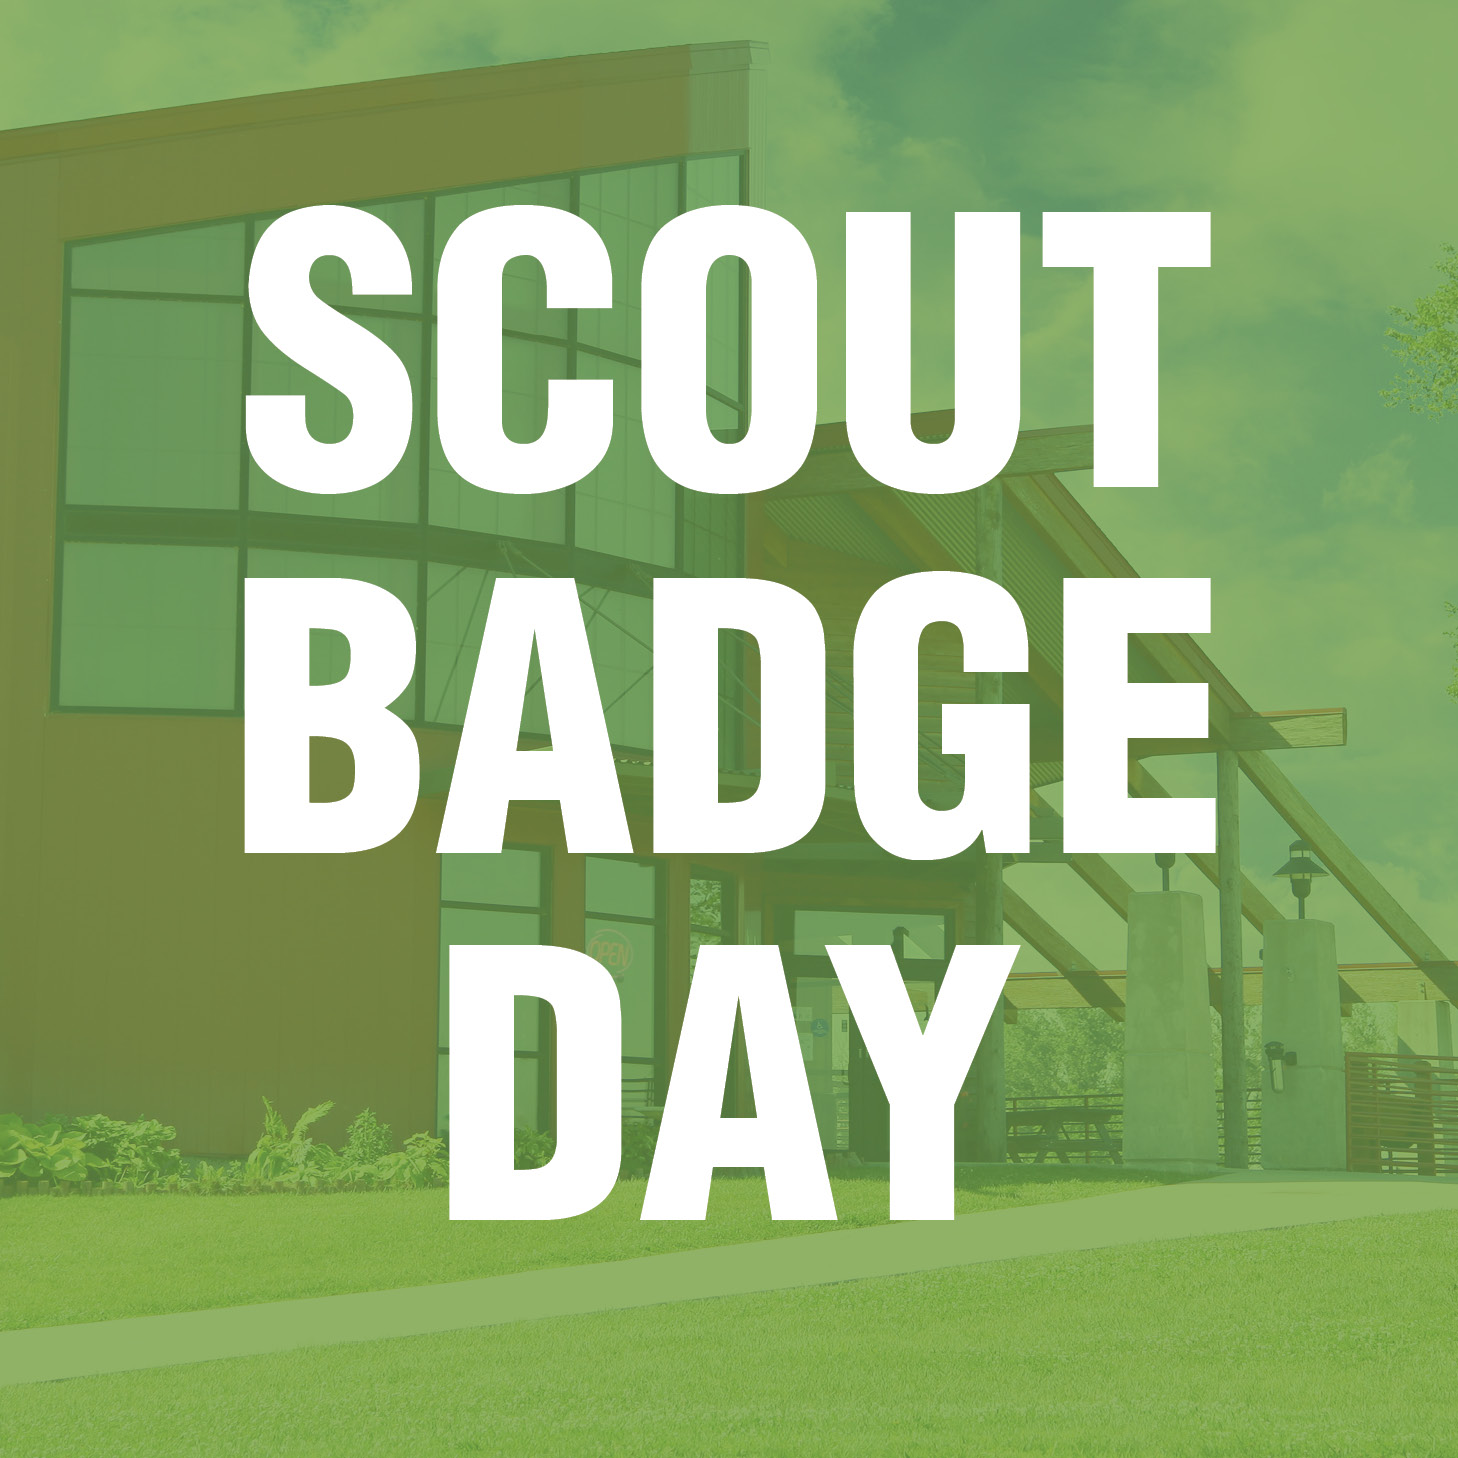 Scout Badge Day